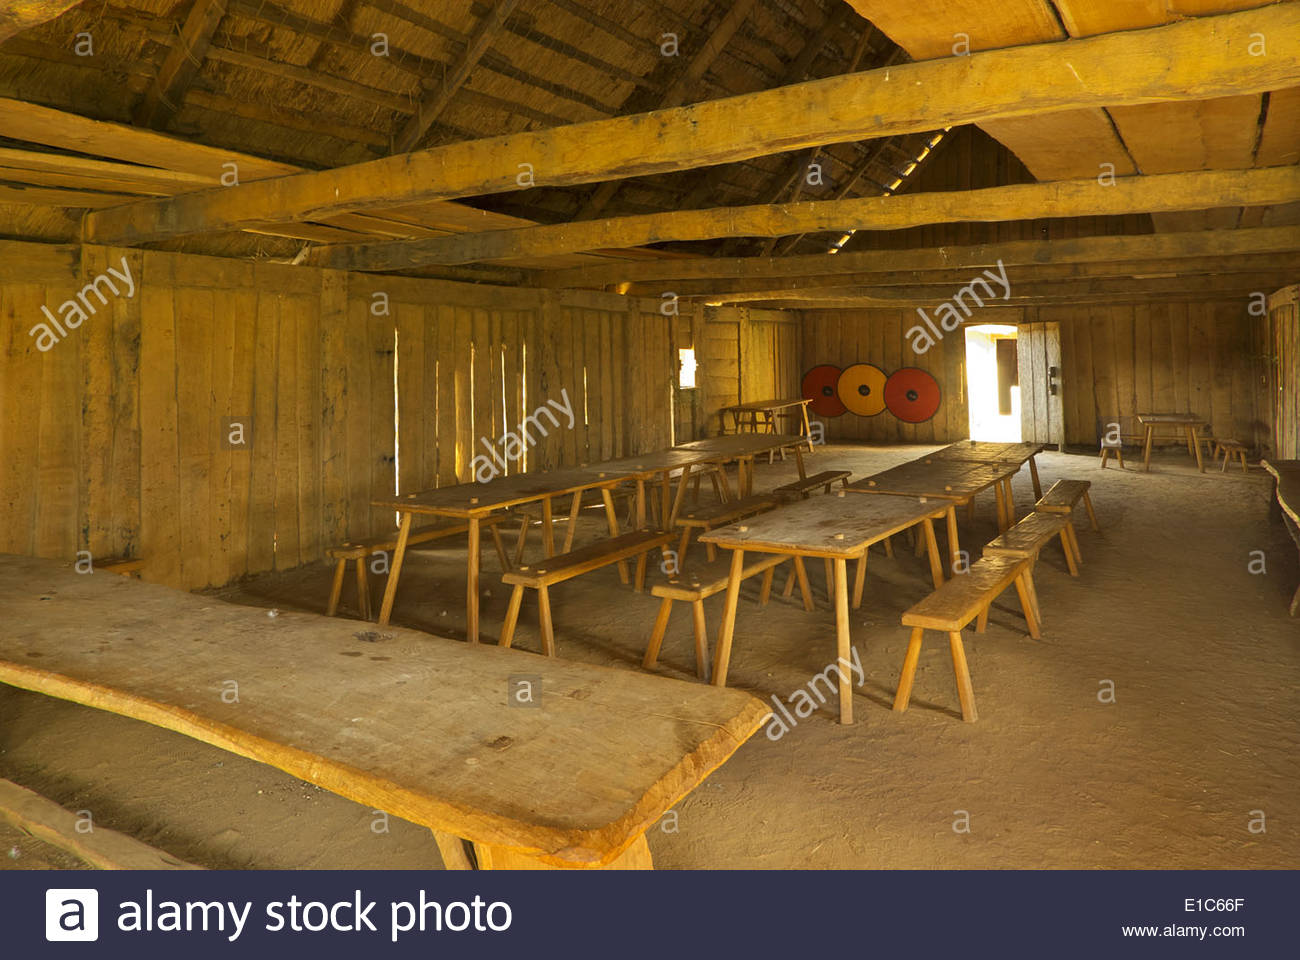 Interior of meeting and dining hall at Haithabu (Haddeby, Hedeby) - Stock Image